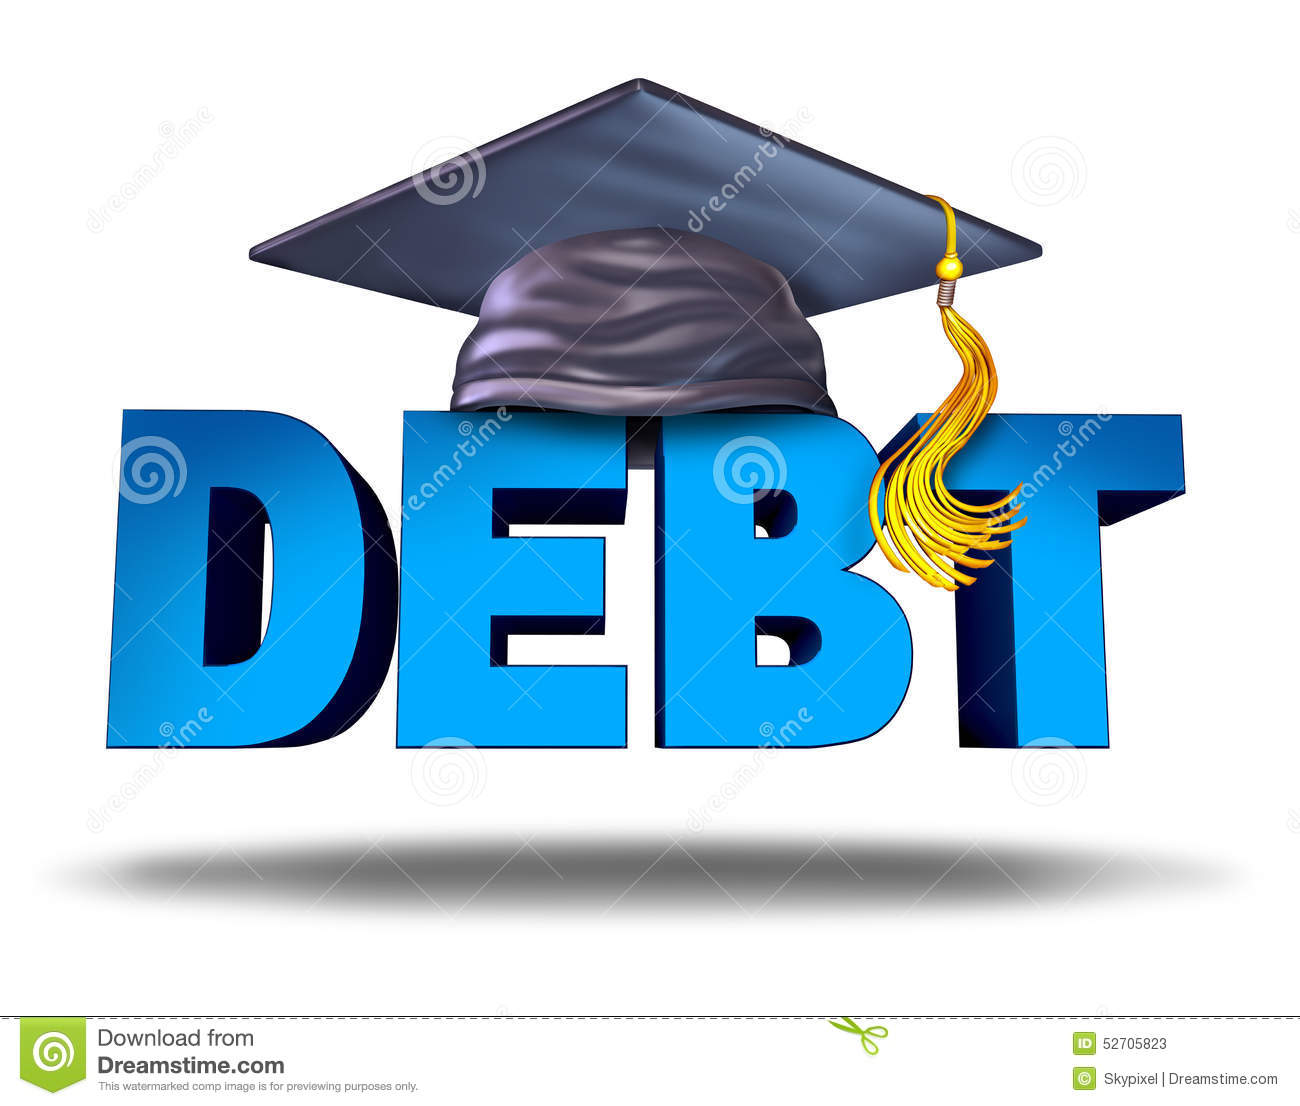 Student loan clipart 3 » Clipart Station.